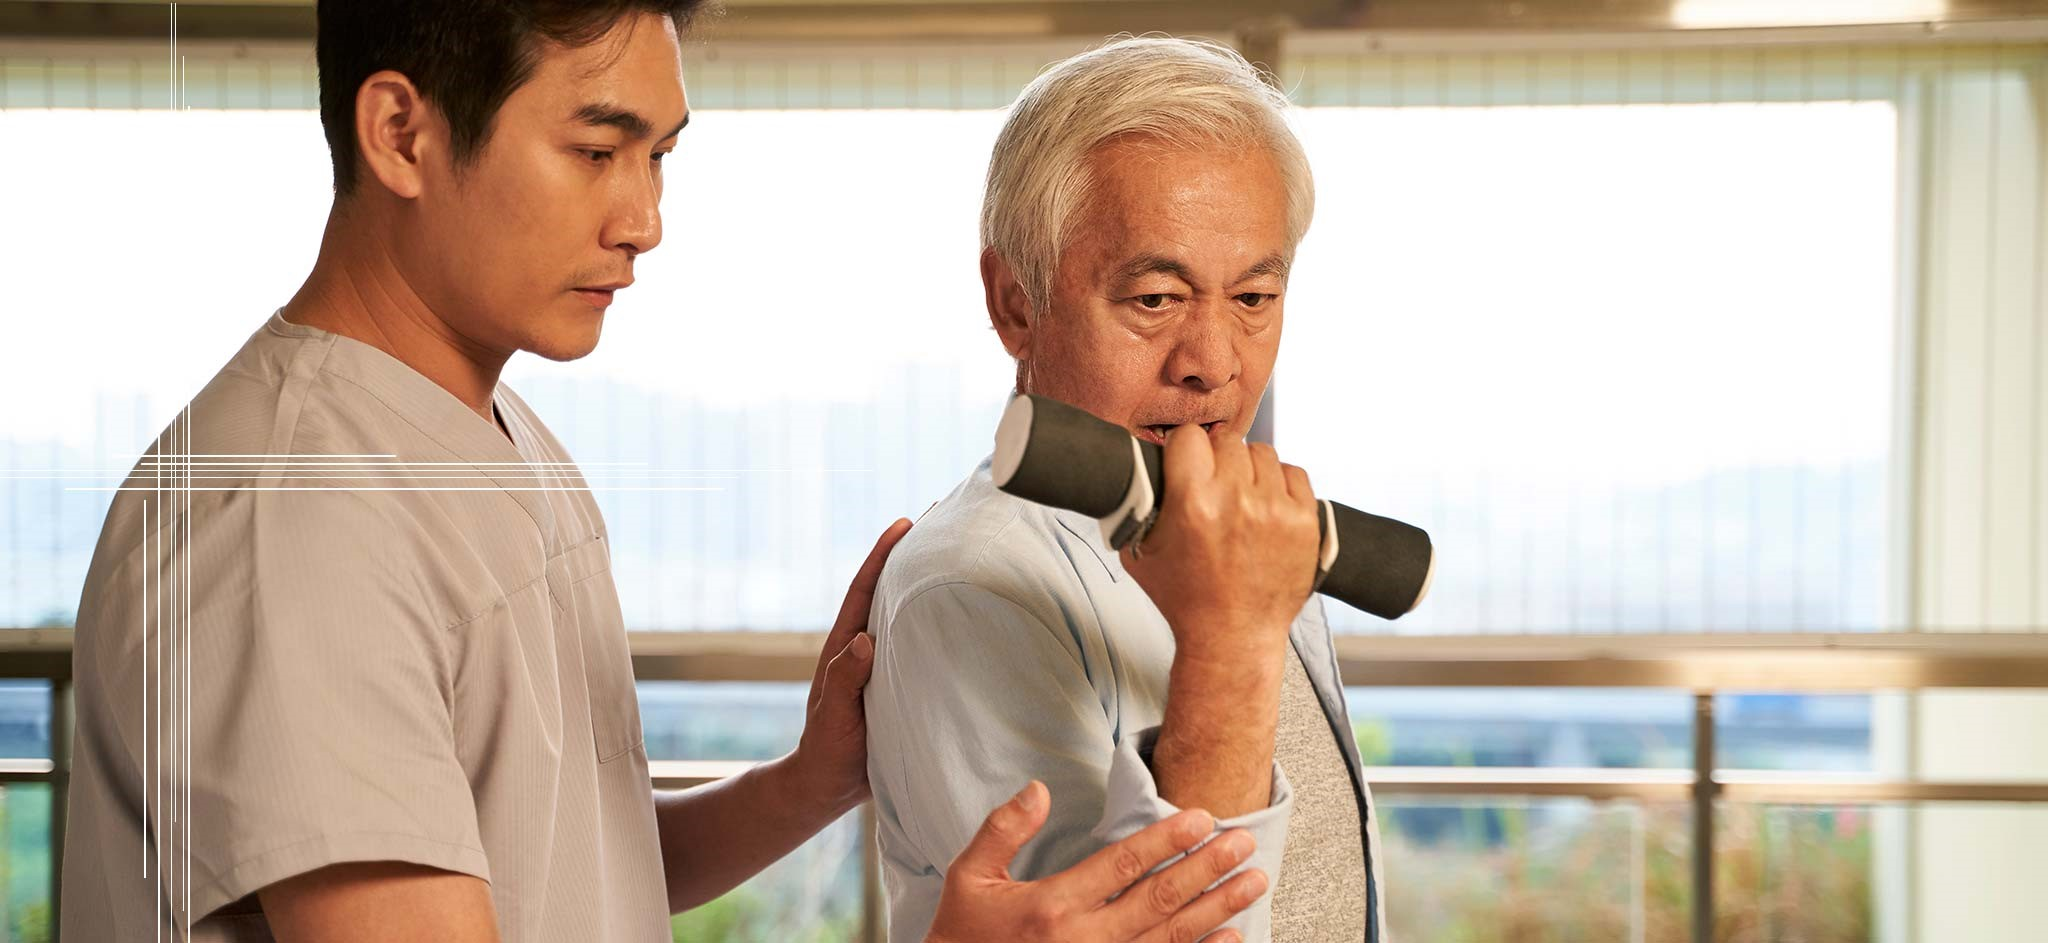 A physical therapist assisting an older man with his exercises